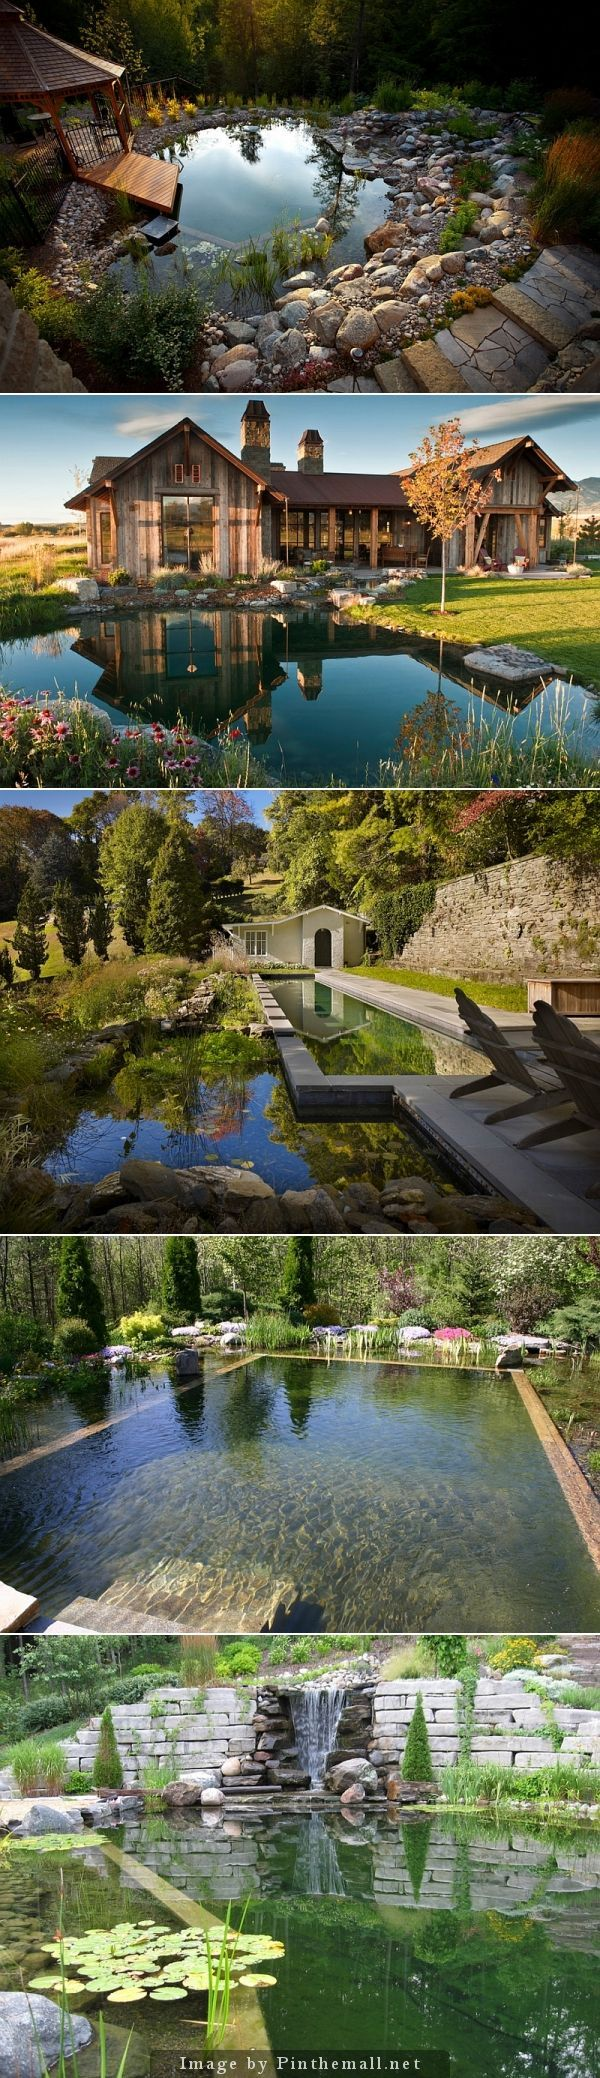 Look at these beautiful natural swimming pools! Could double as froggy habitats, no?